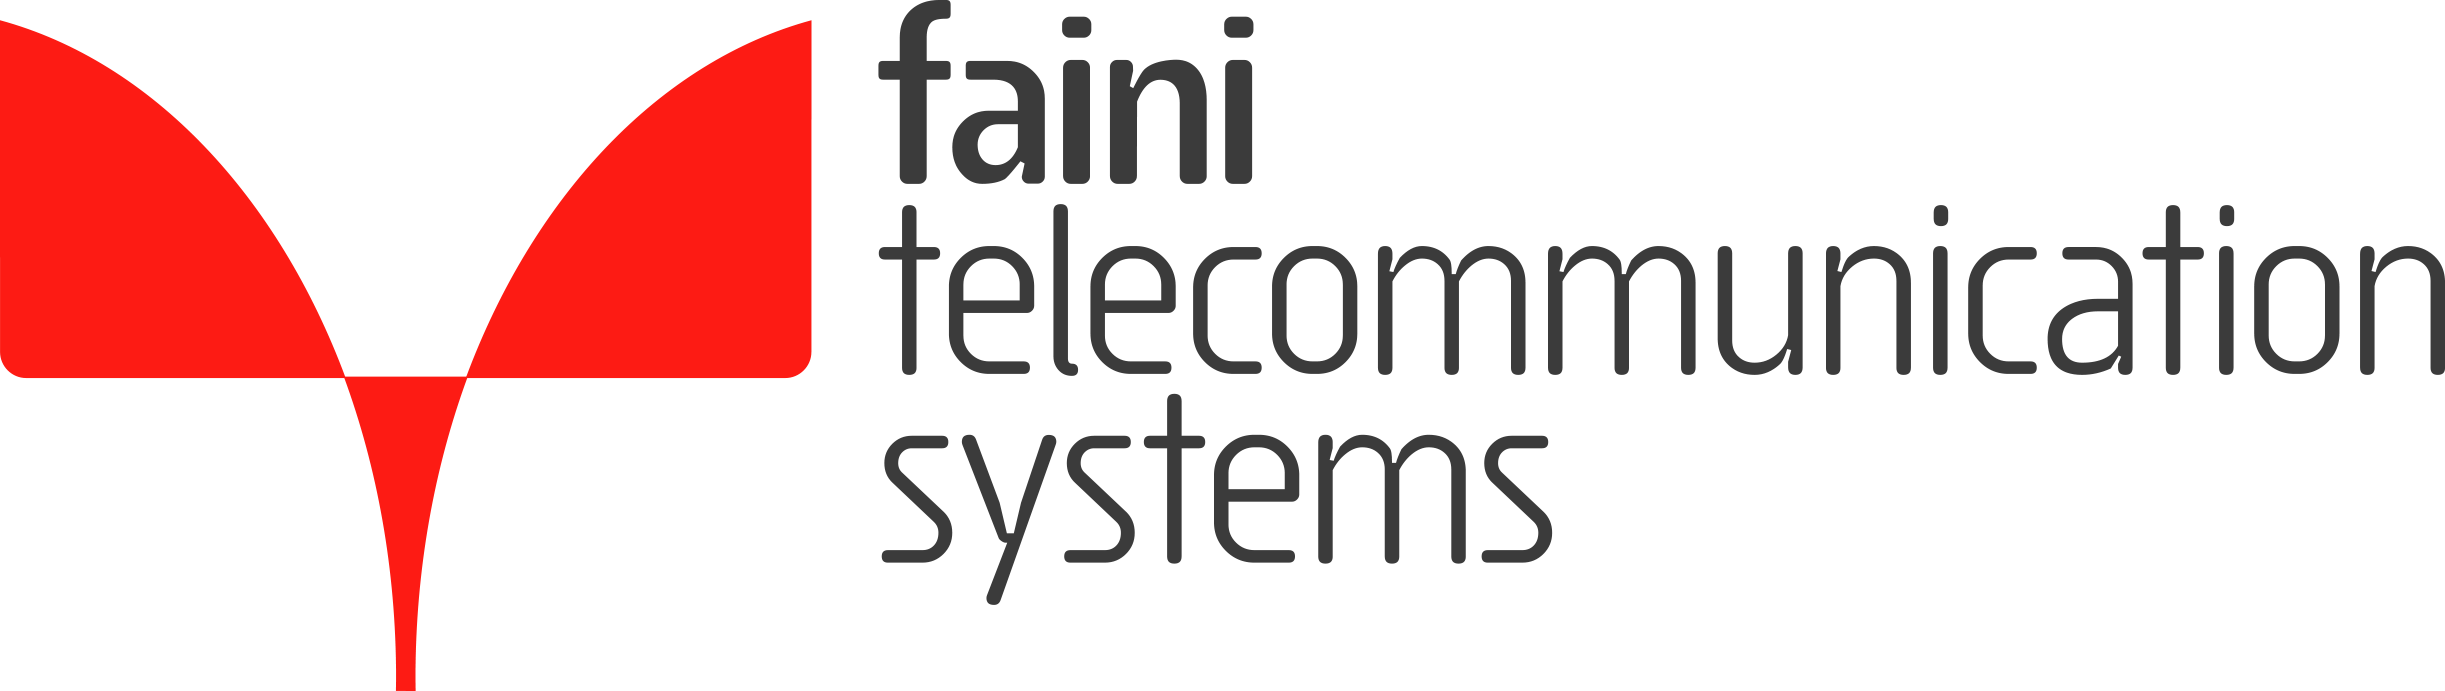 Faini Telecommunication Systems